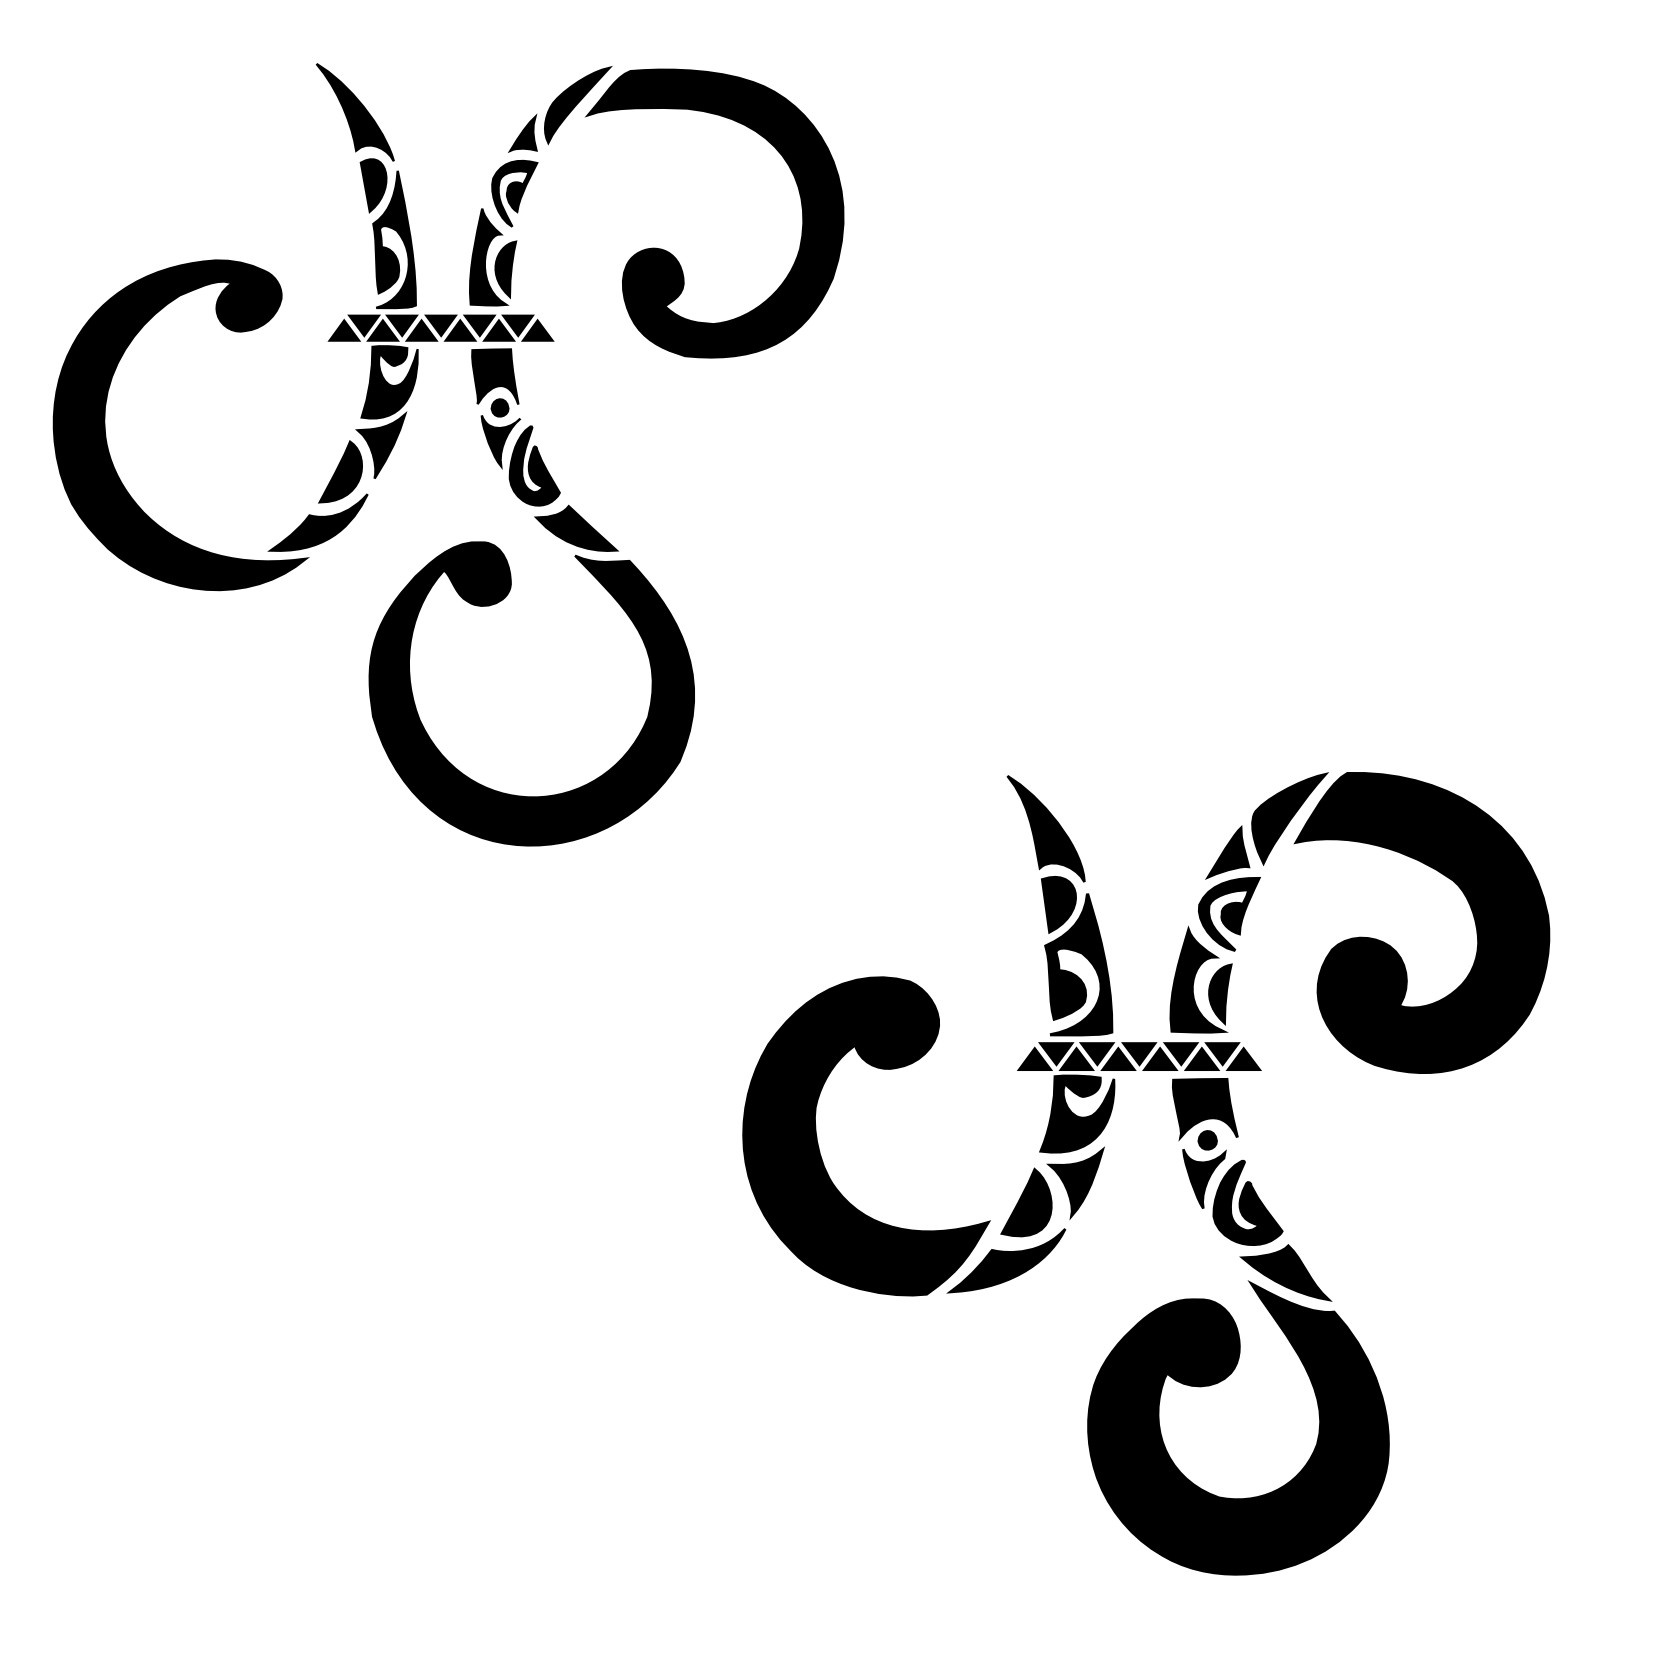 Aries Cancer And Capricorn Zodiac Symbols Tattoos Designs